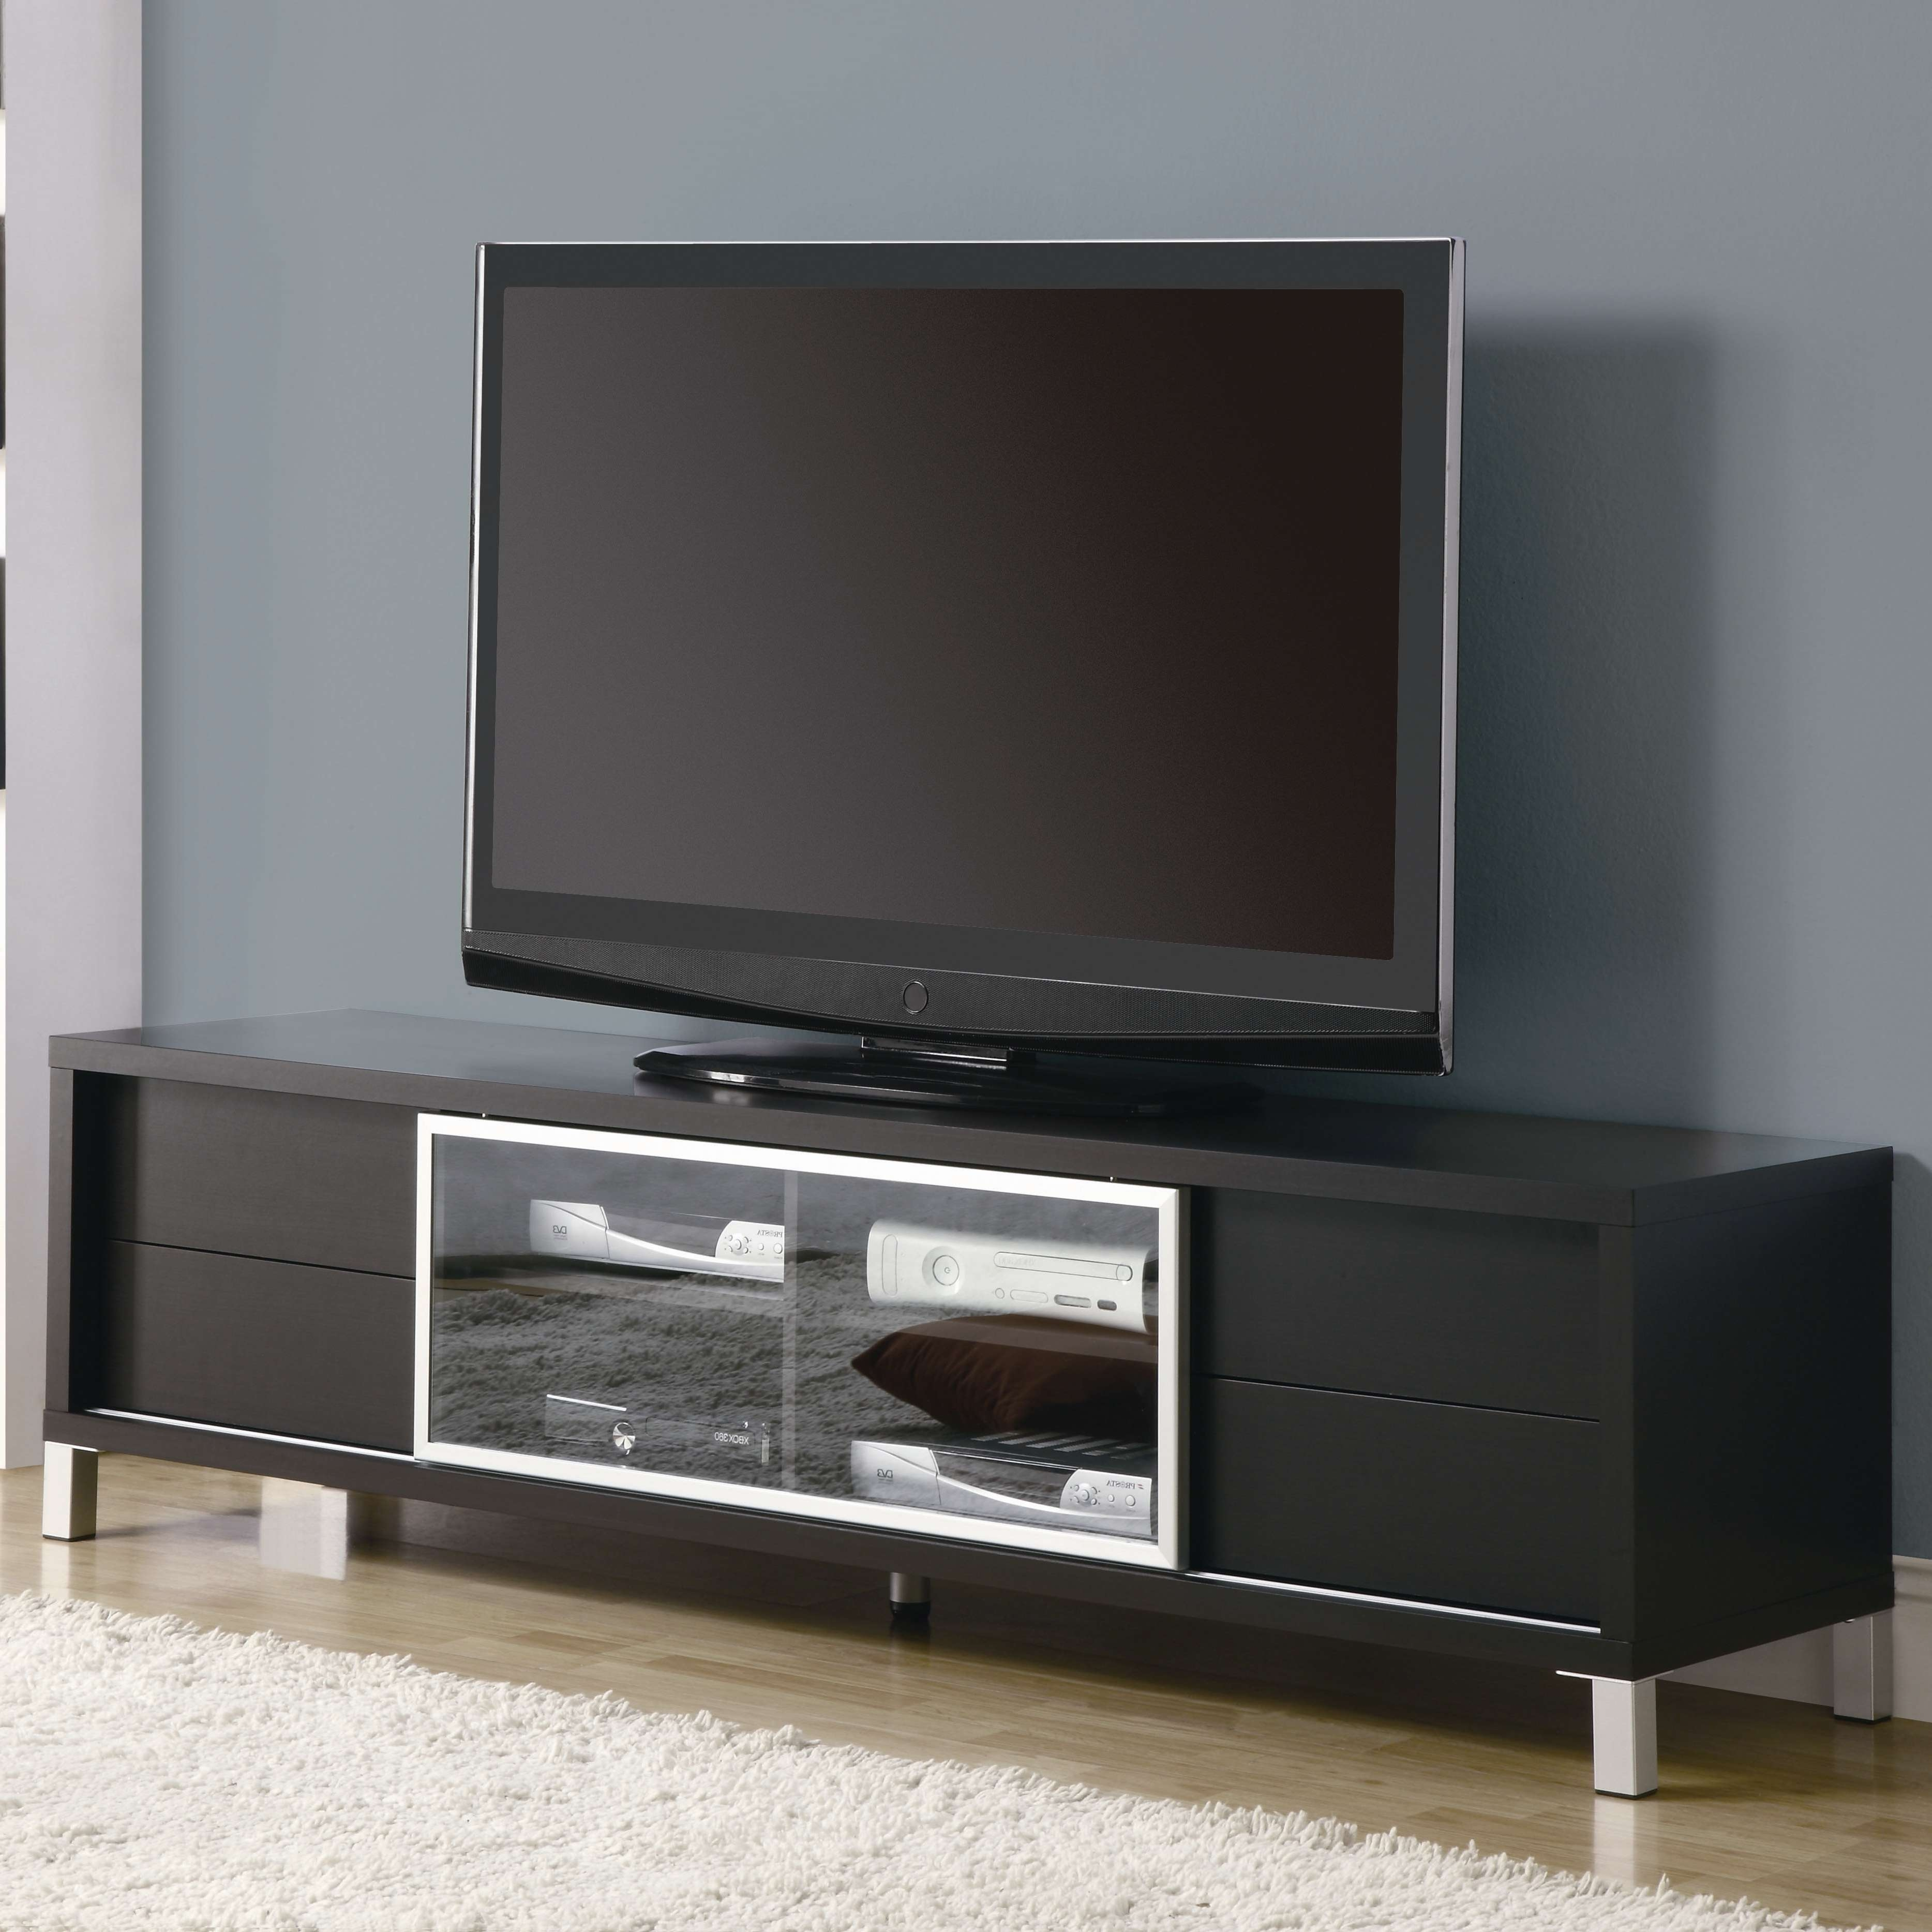 Furnitures Picture Of Hidden Tv Stand All Can Download Guide And With Regard To All Modern Tv Stands (View 7 of 20)